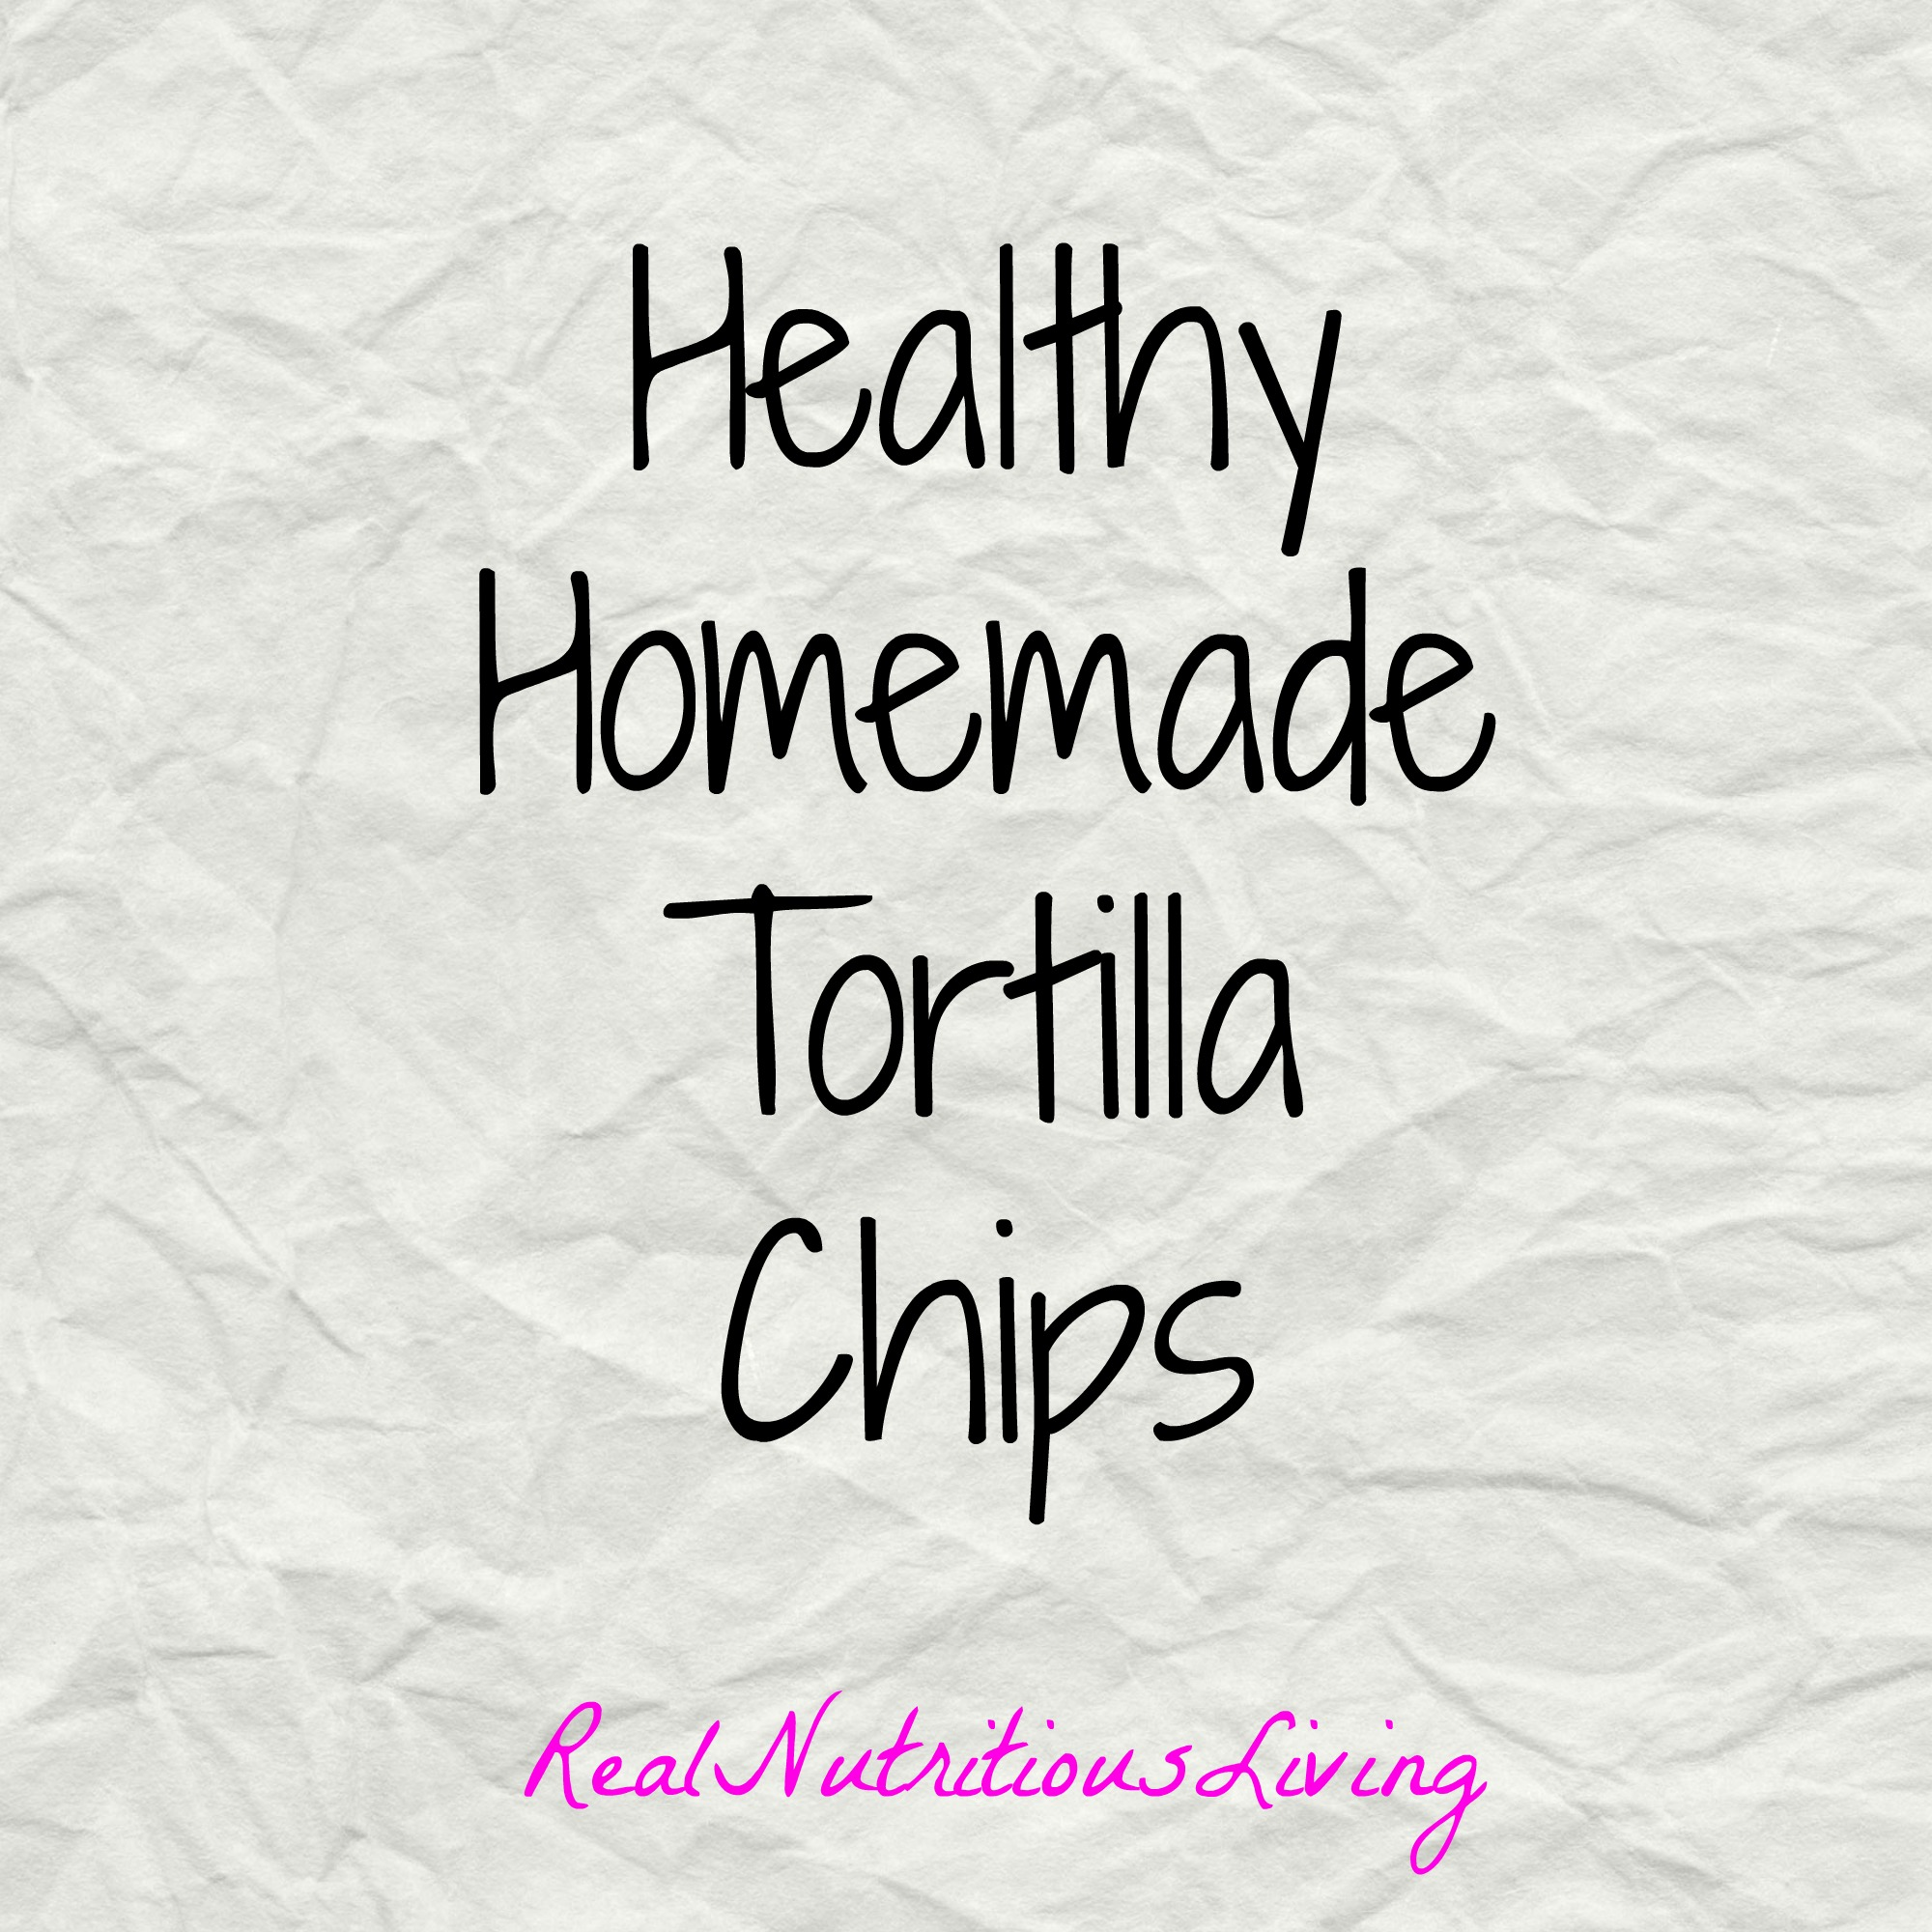 Healthy Homemade Tortilla Chips